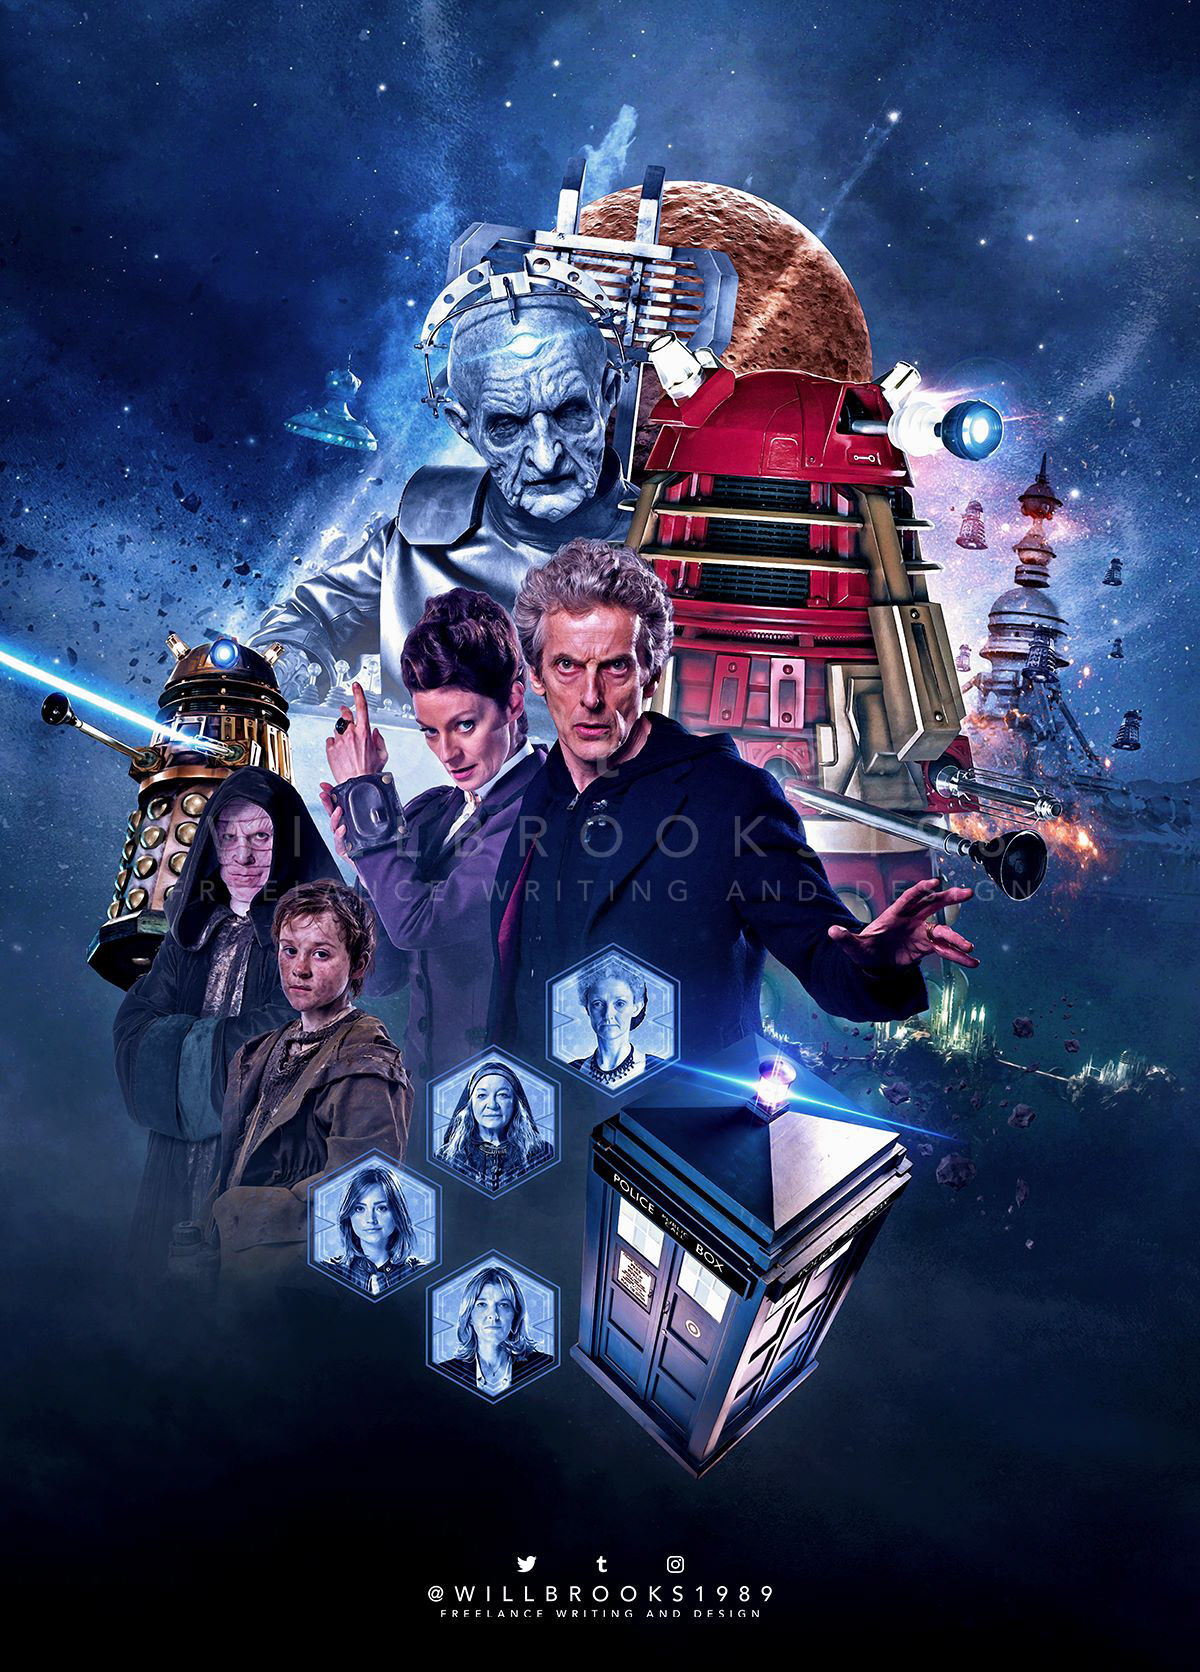 Doctor Who Other Artwork On Behance